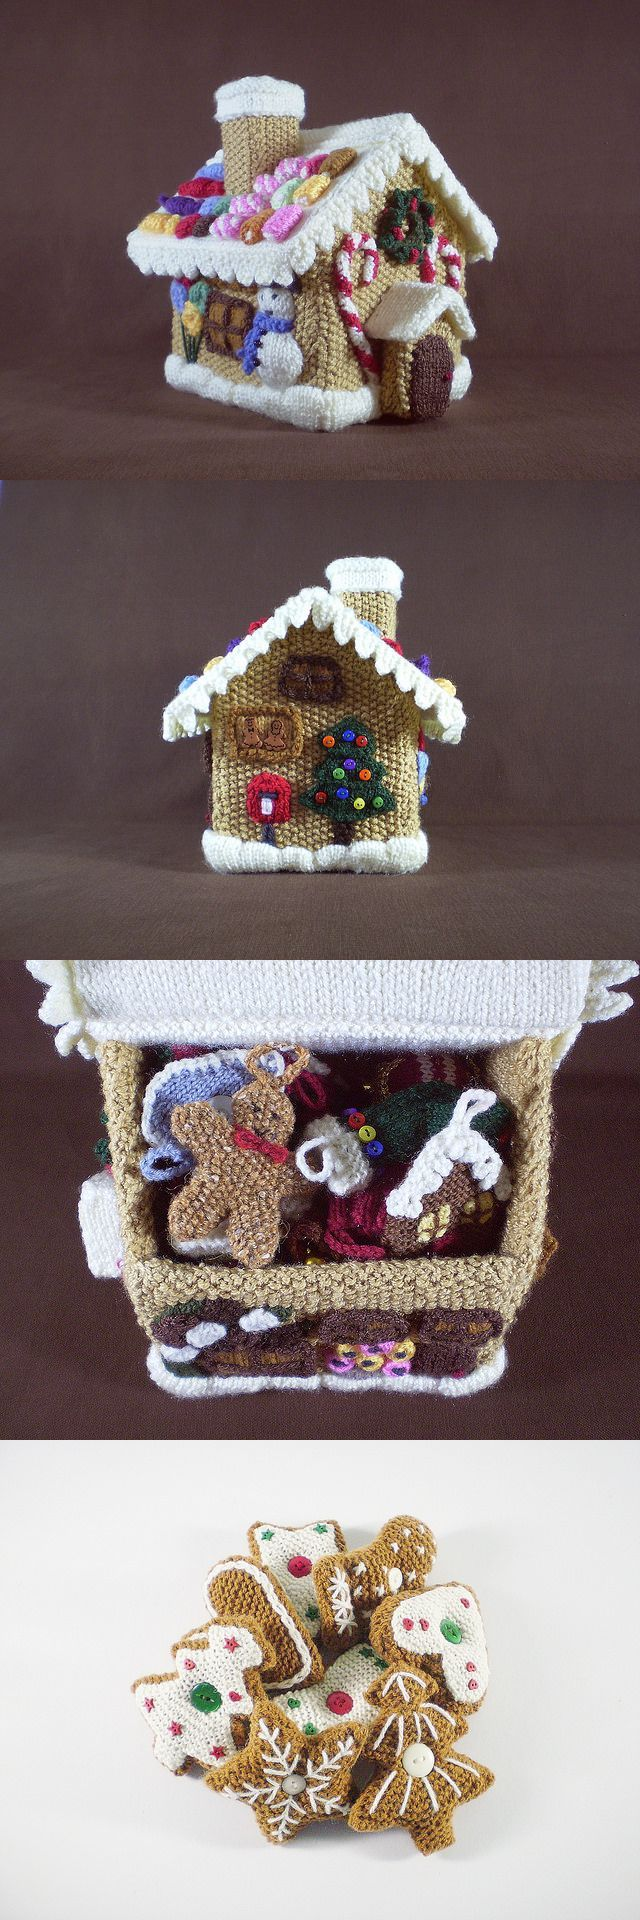 Awesome Gingerbread House by Frankie Brown! #FreePattern